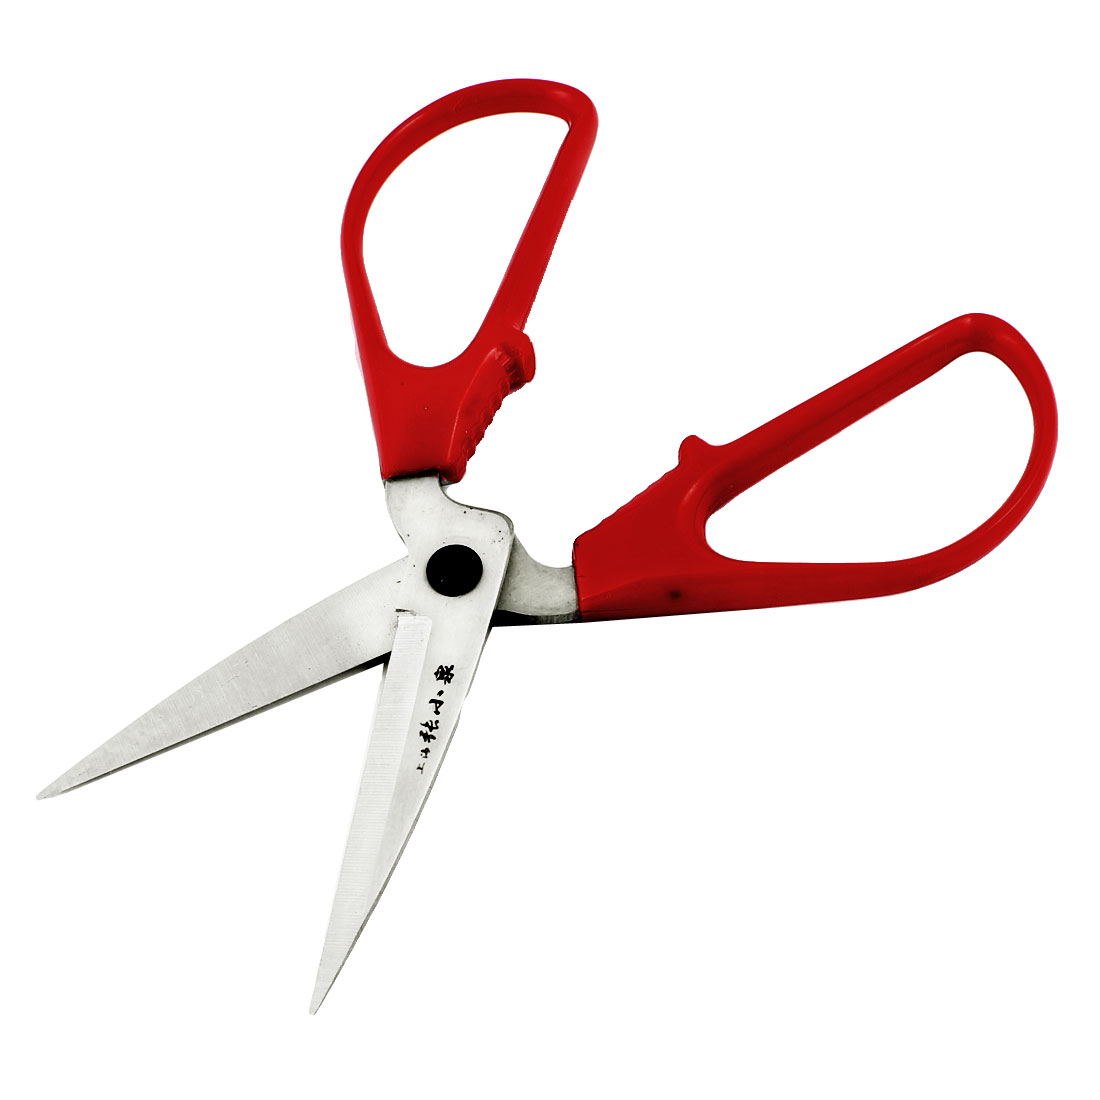 Home Sewing Metal 17.2cm Length Red Plastic Grip Scissors Shear Cutter